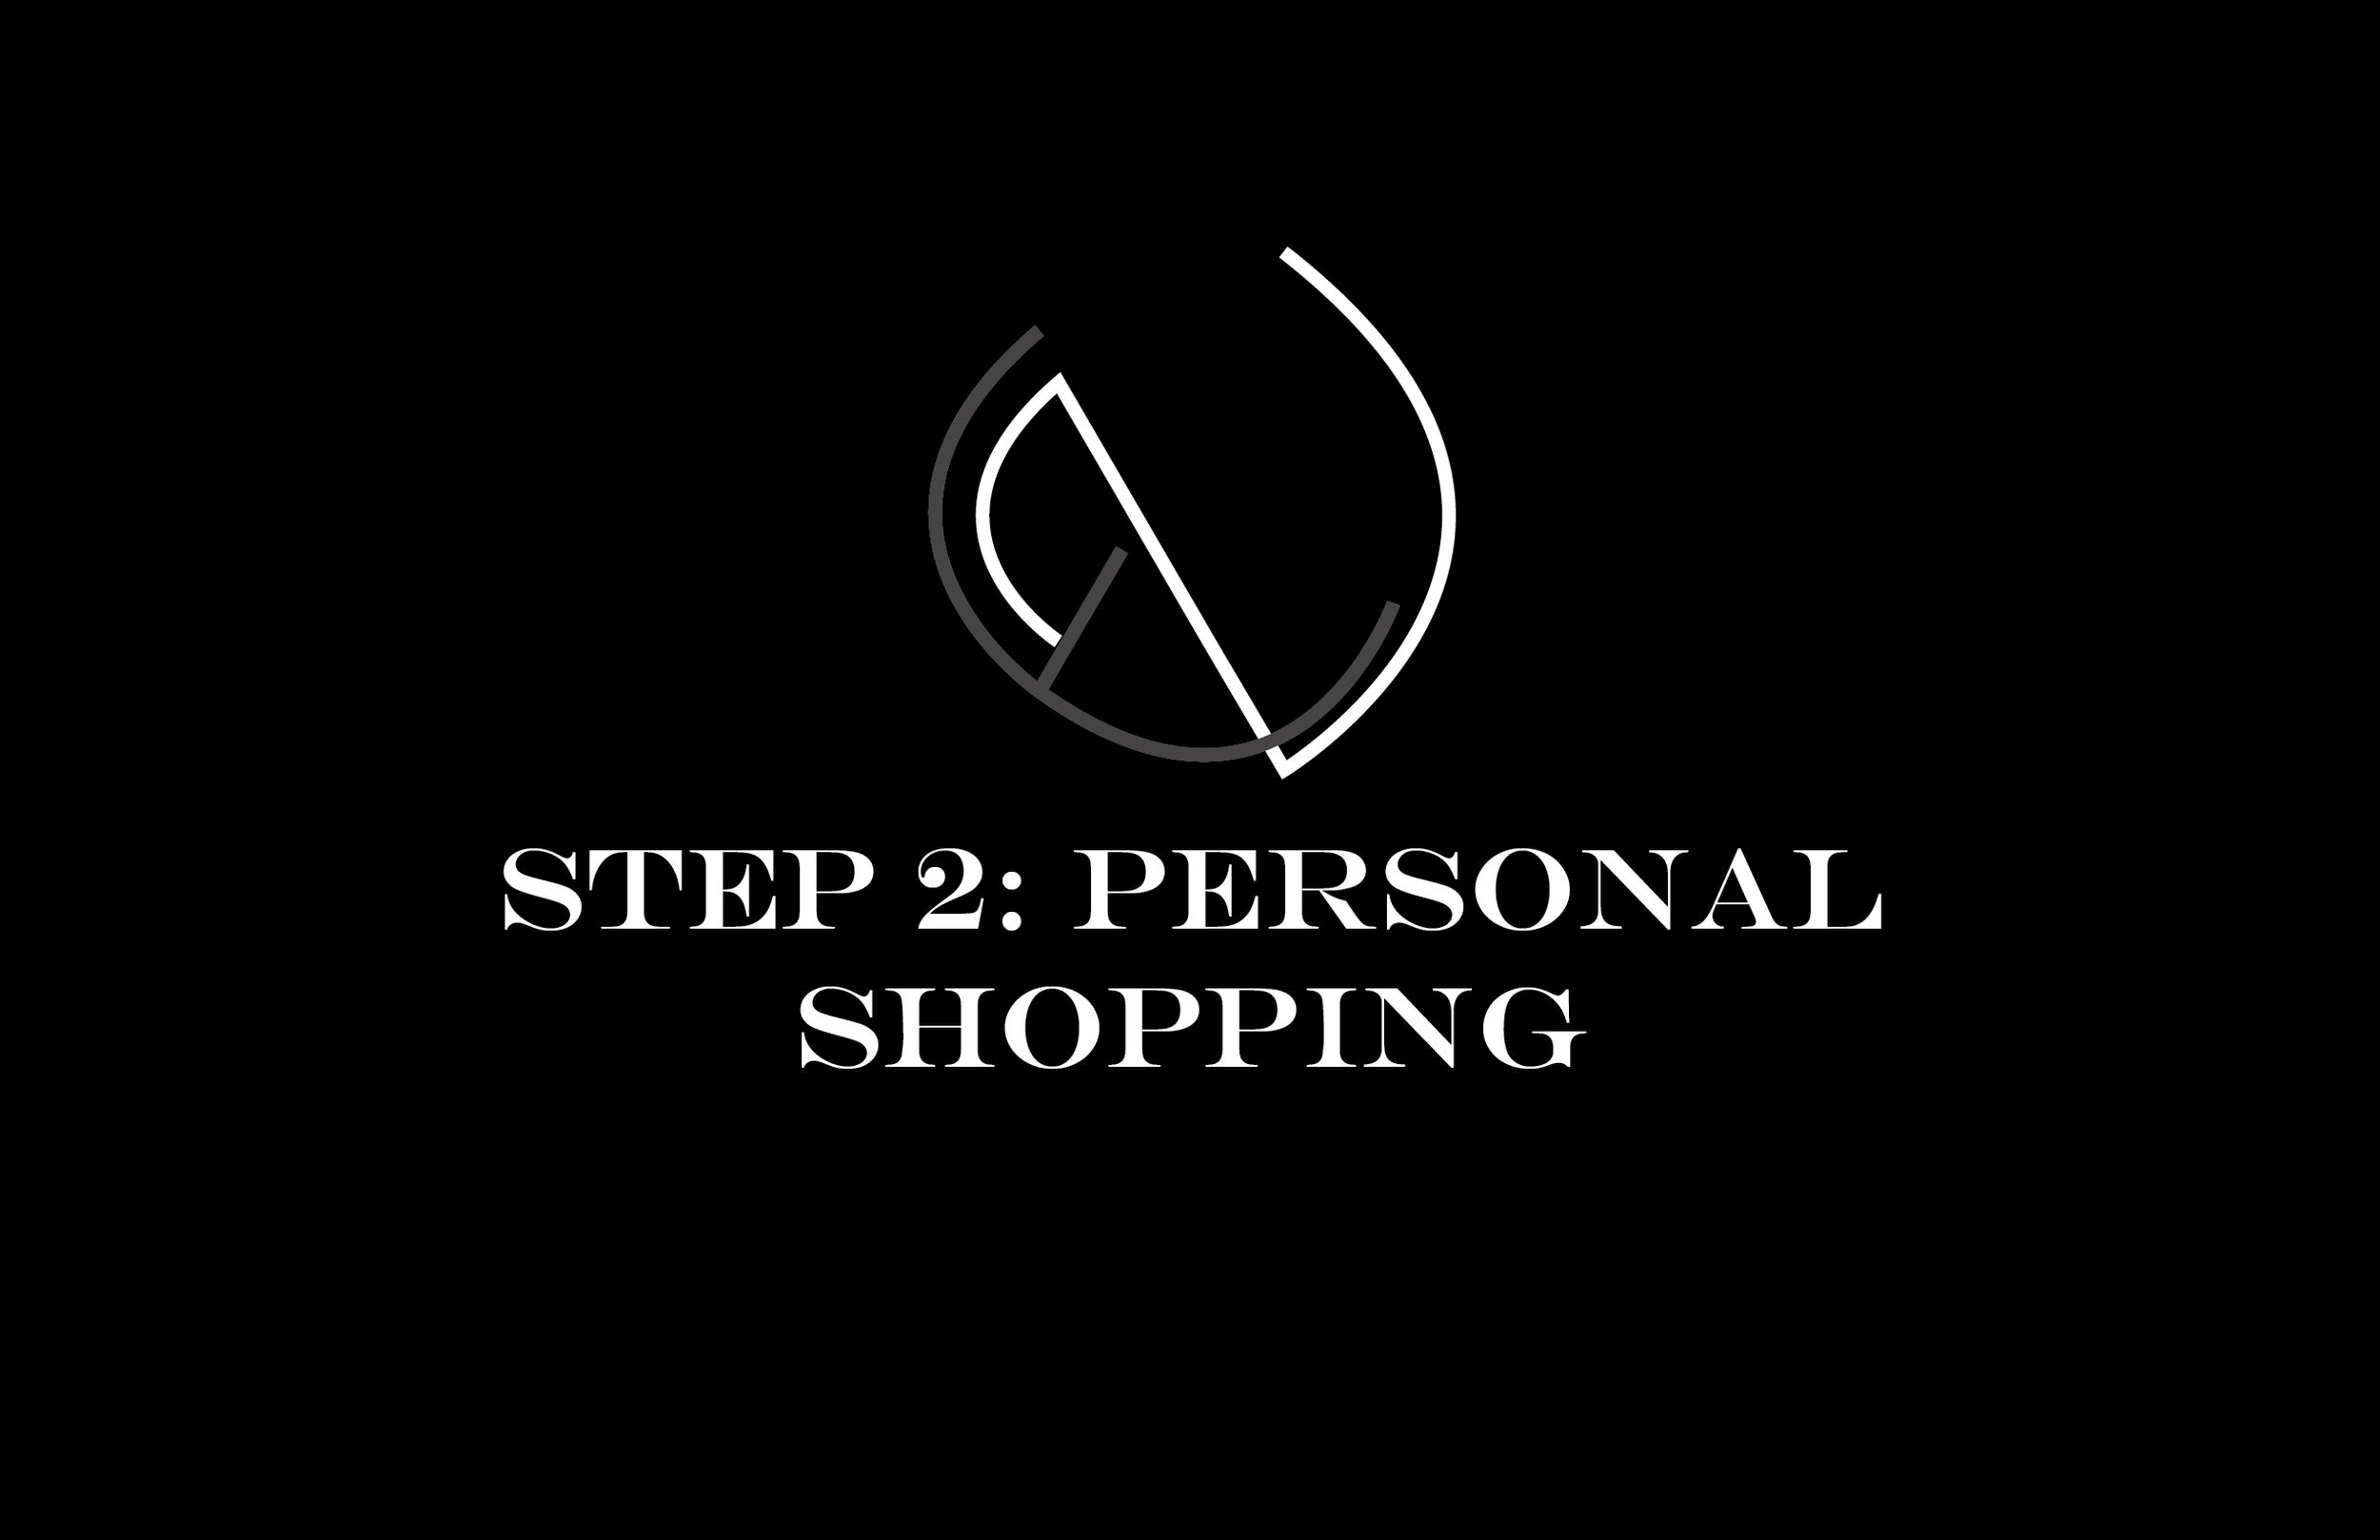 personal shopping-01.png